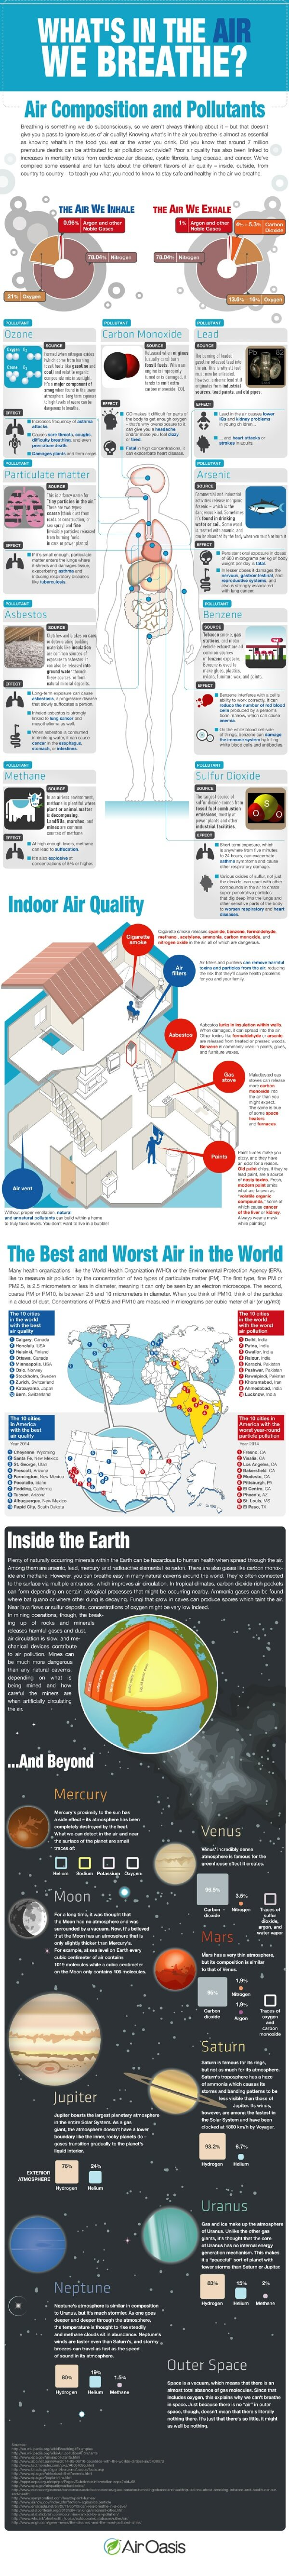 What's in the Air We Breathe? (Infographic) | Air Oasis